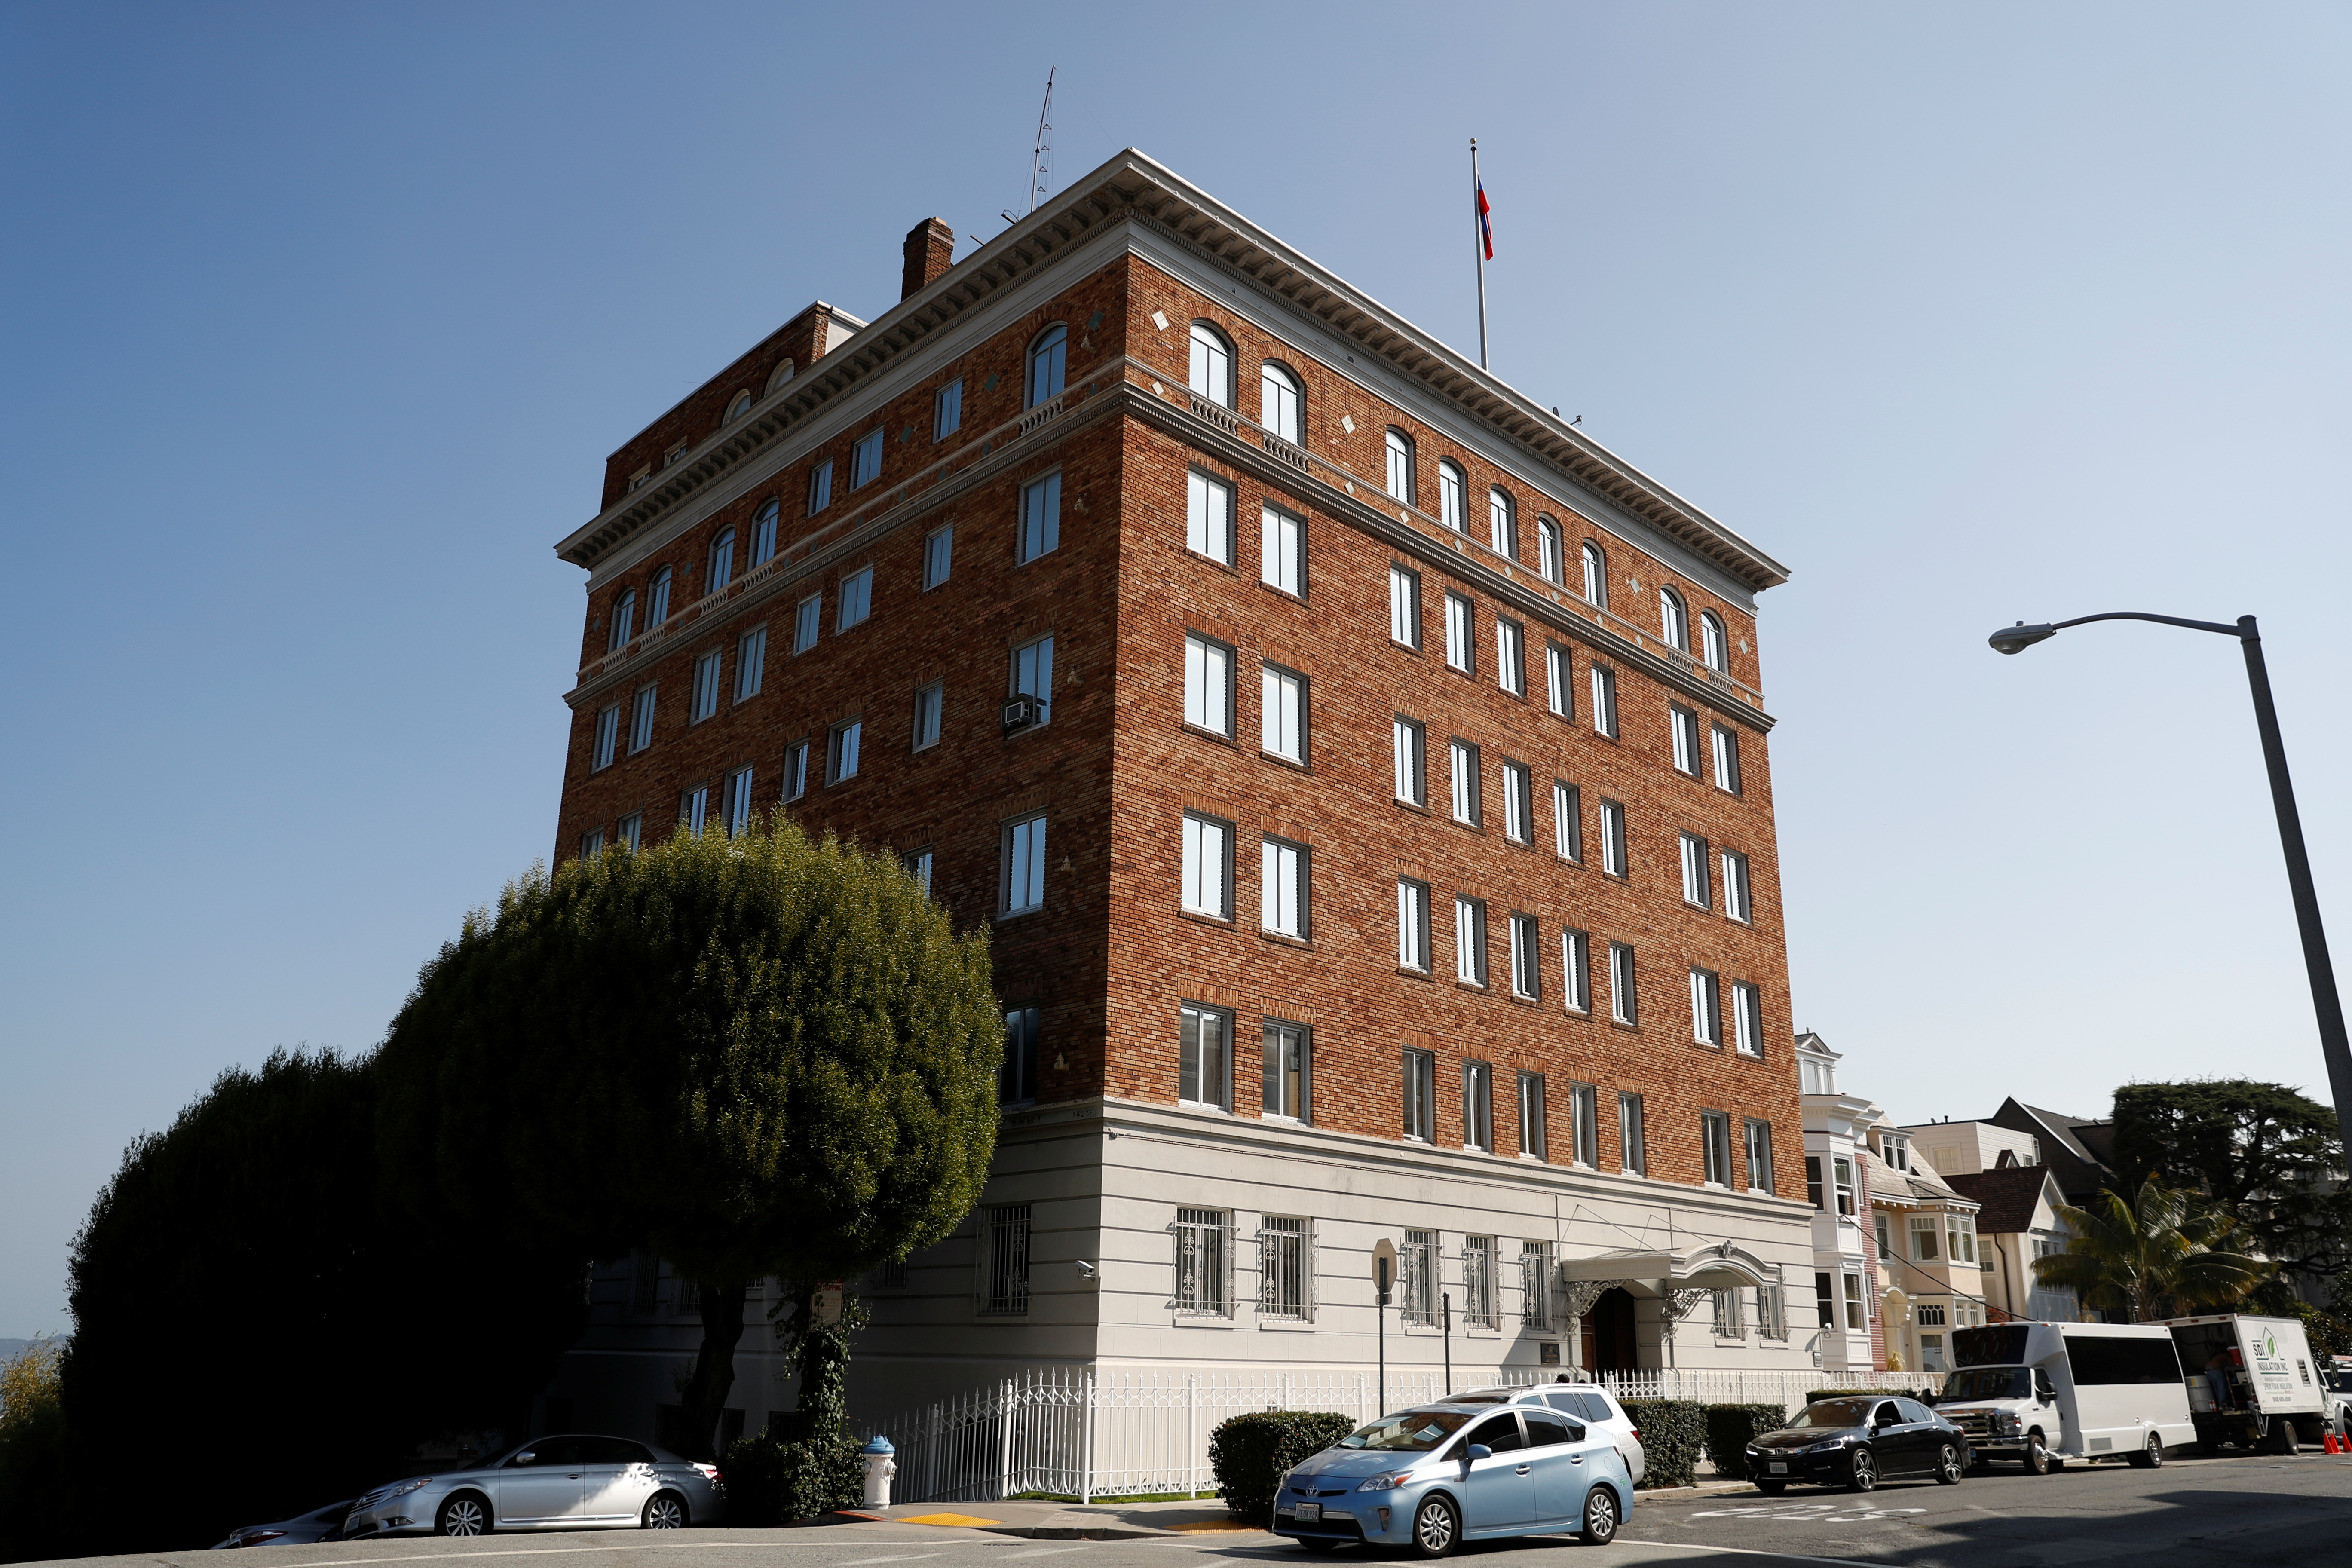 The entrance to the building of the Consulate General of Russia is shown in San Francisco, Calif., on August 31, 2017.   (REUTERS/Stephen Lam)